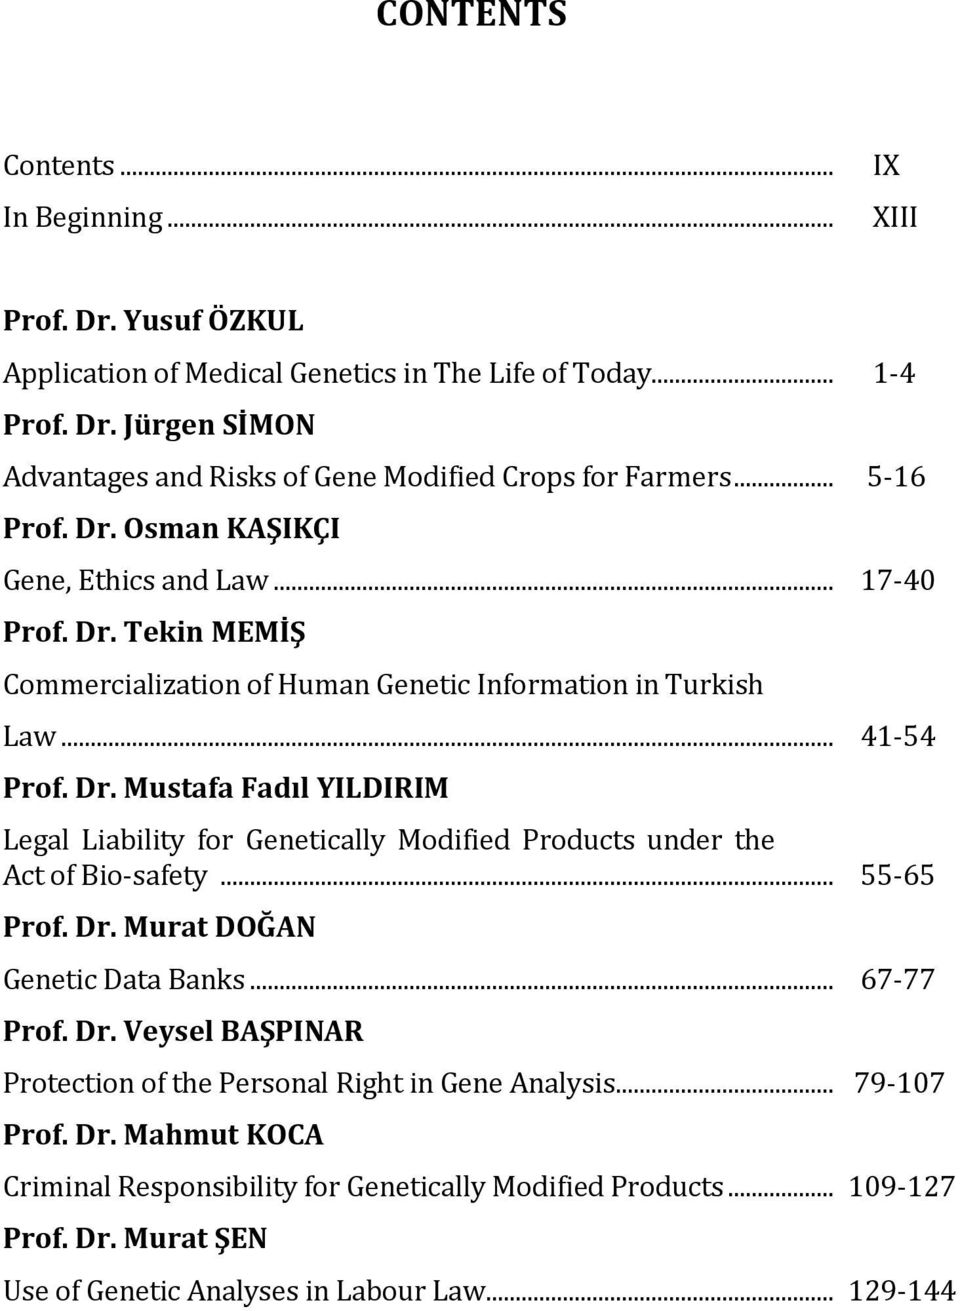 .. 55-65 Prof. Dr. Murat DOĞAN Genetic Data Banks... 67-77 Prof. Dr. Veysel BAŞPINAR Protection of the Personal Right in Gene Analysis... 79-107 Prof. Dr. Mahmut KOCA Criminal Responsibility for Genetically Modified Products.